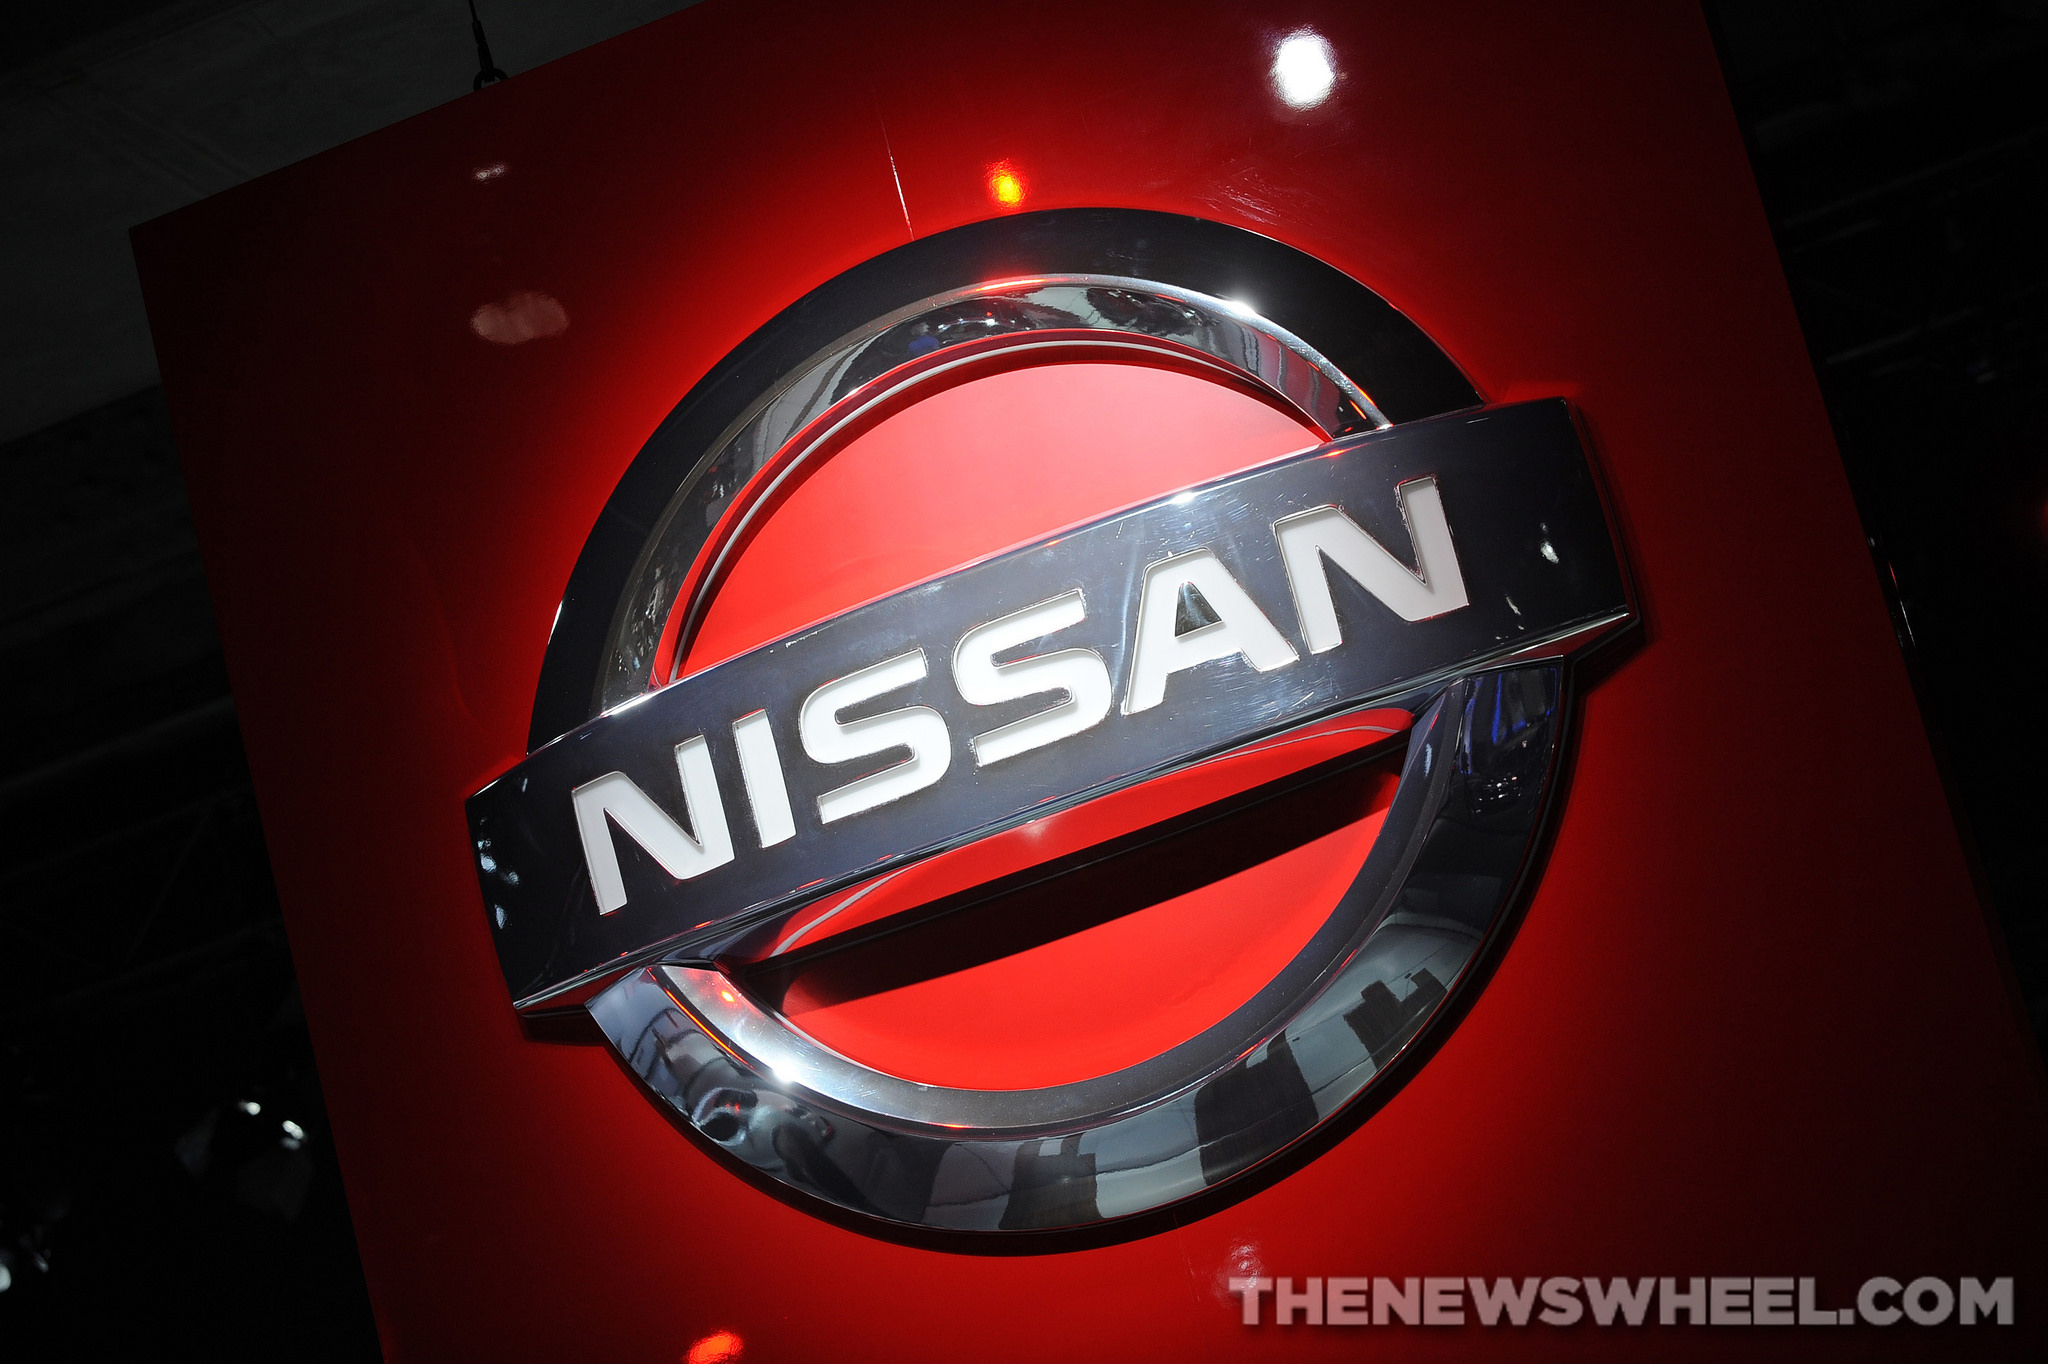 red Nissan logo